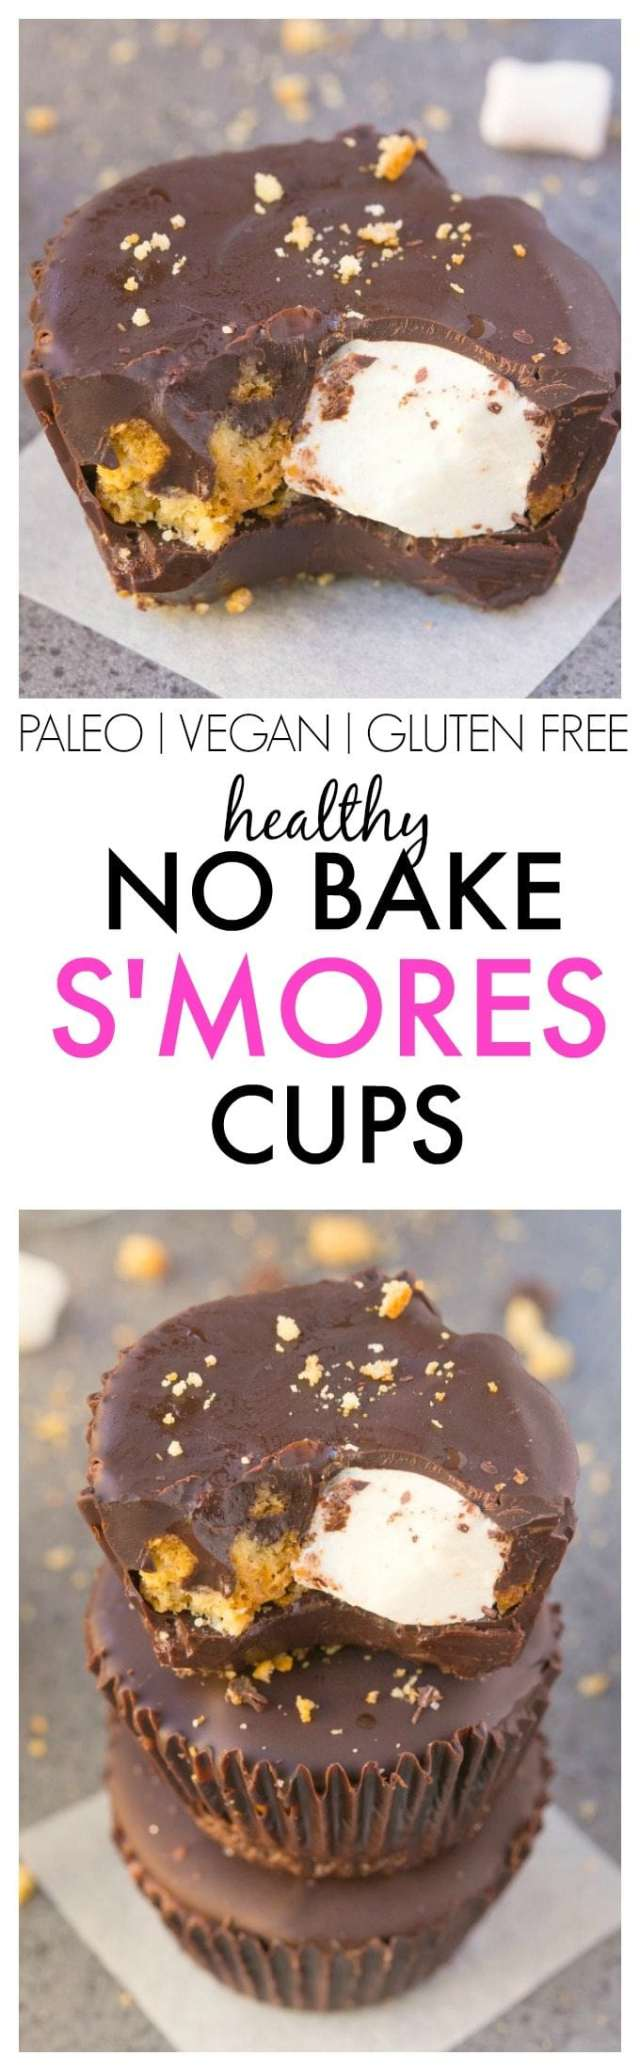 Healthy NO BAKE S'mores Cups- Easy, delicious and secretly healthy, these no-fuss, no-mess snacks/desserts are a huge hit! {vegan, gluten free, paleo recipe}- thebigmansworld.com